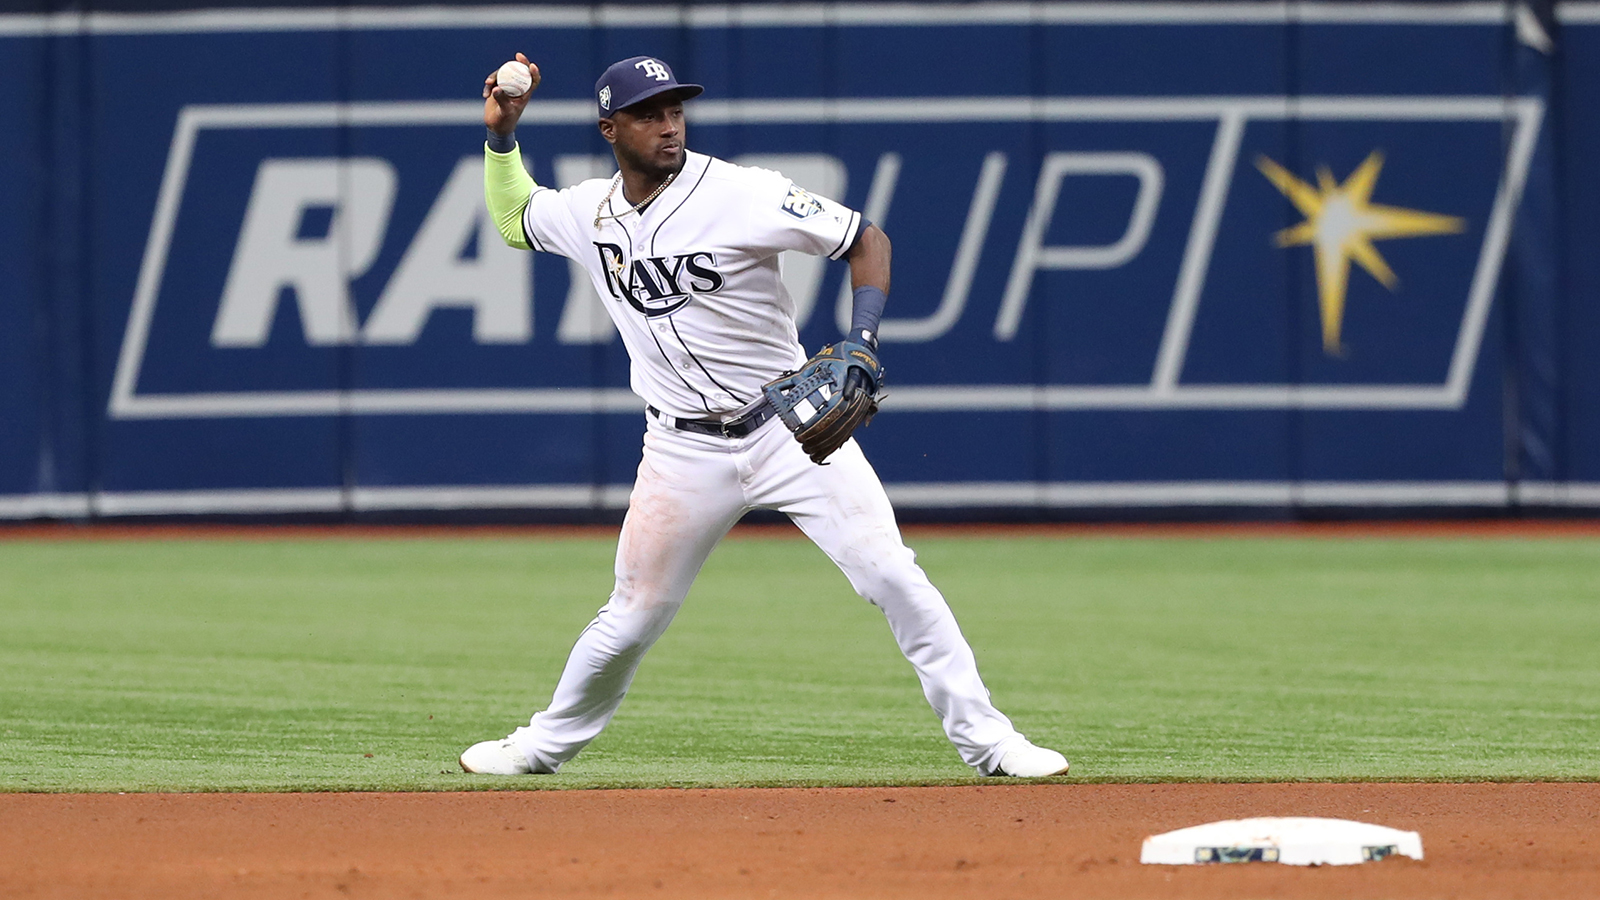 Rays trade SS Adeiny Hechavarria to Pirates for RHP Matt Seelinger